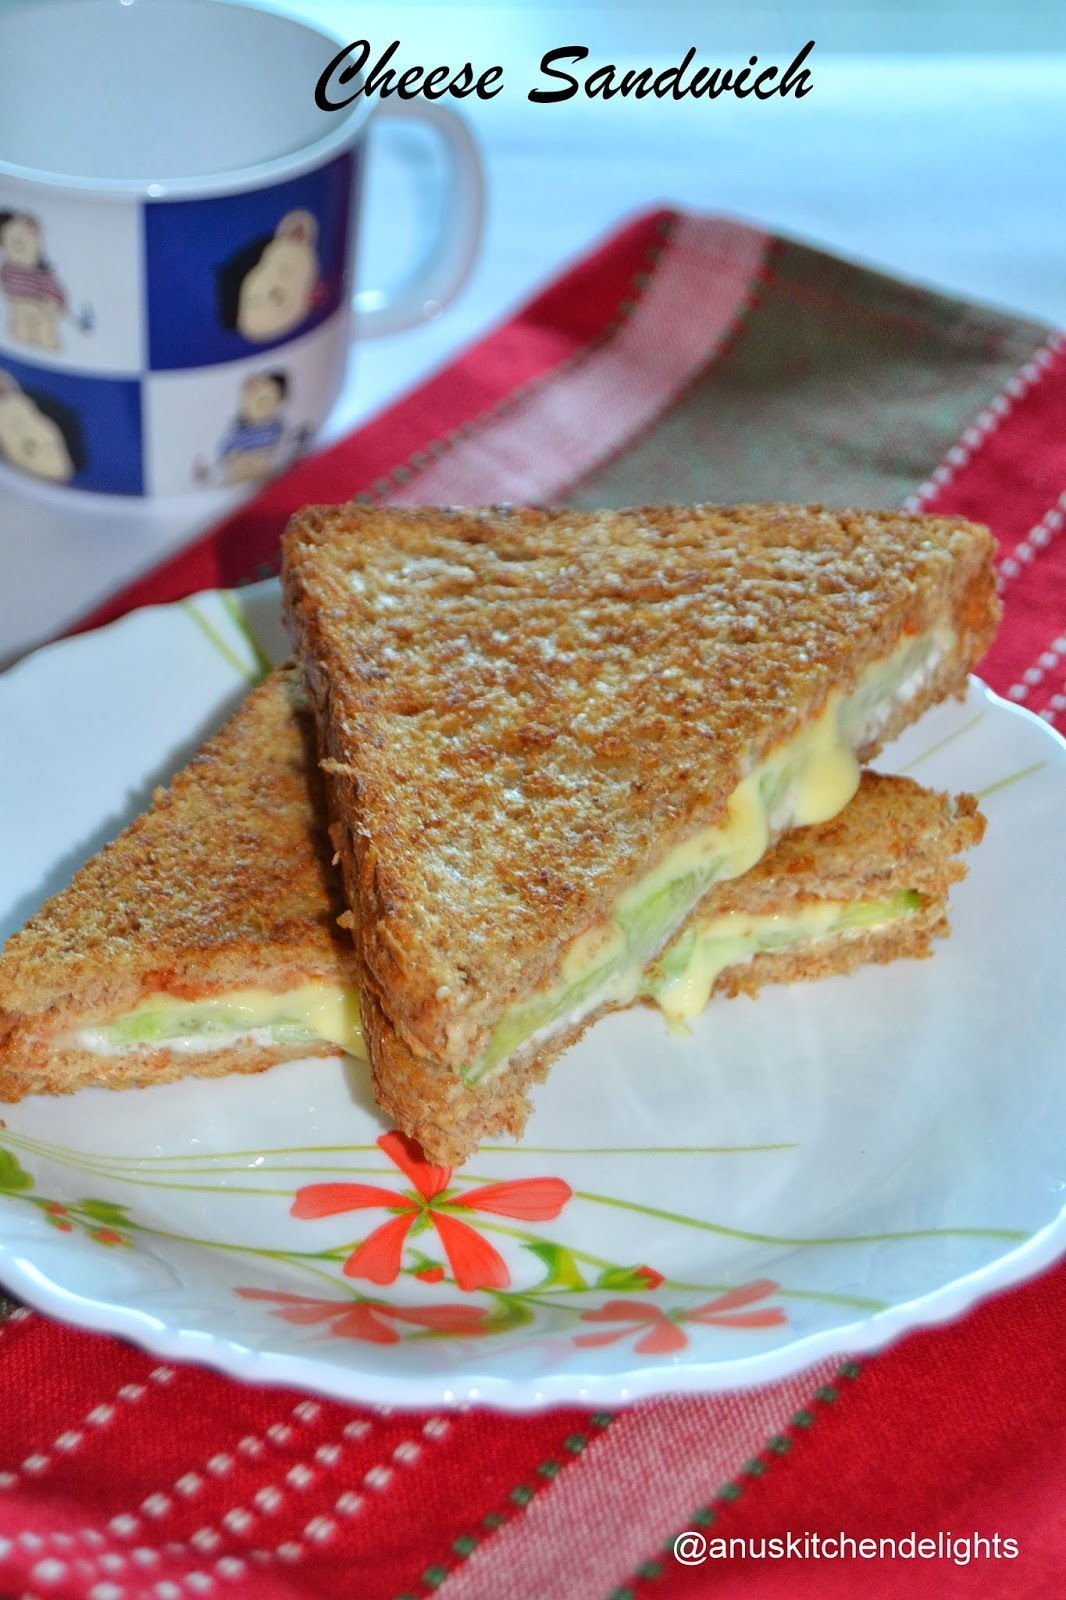 Cheese Sandwich / Grilled Cheese Sandwich with vegetables